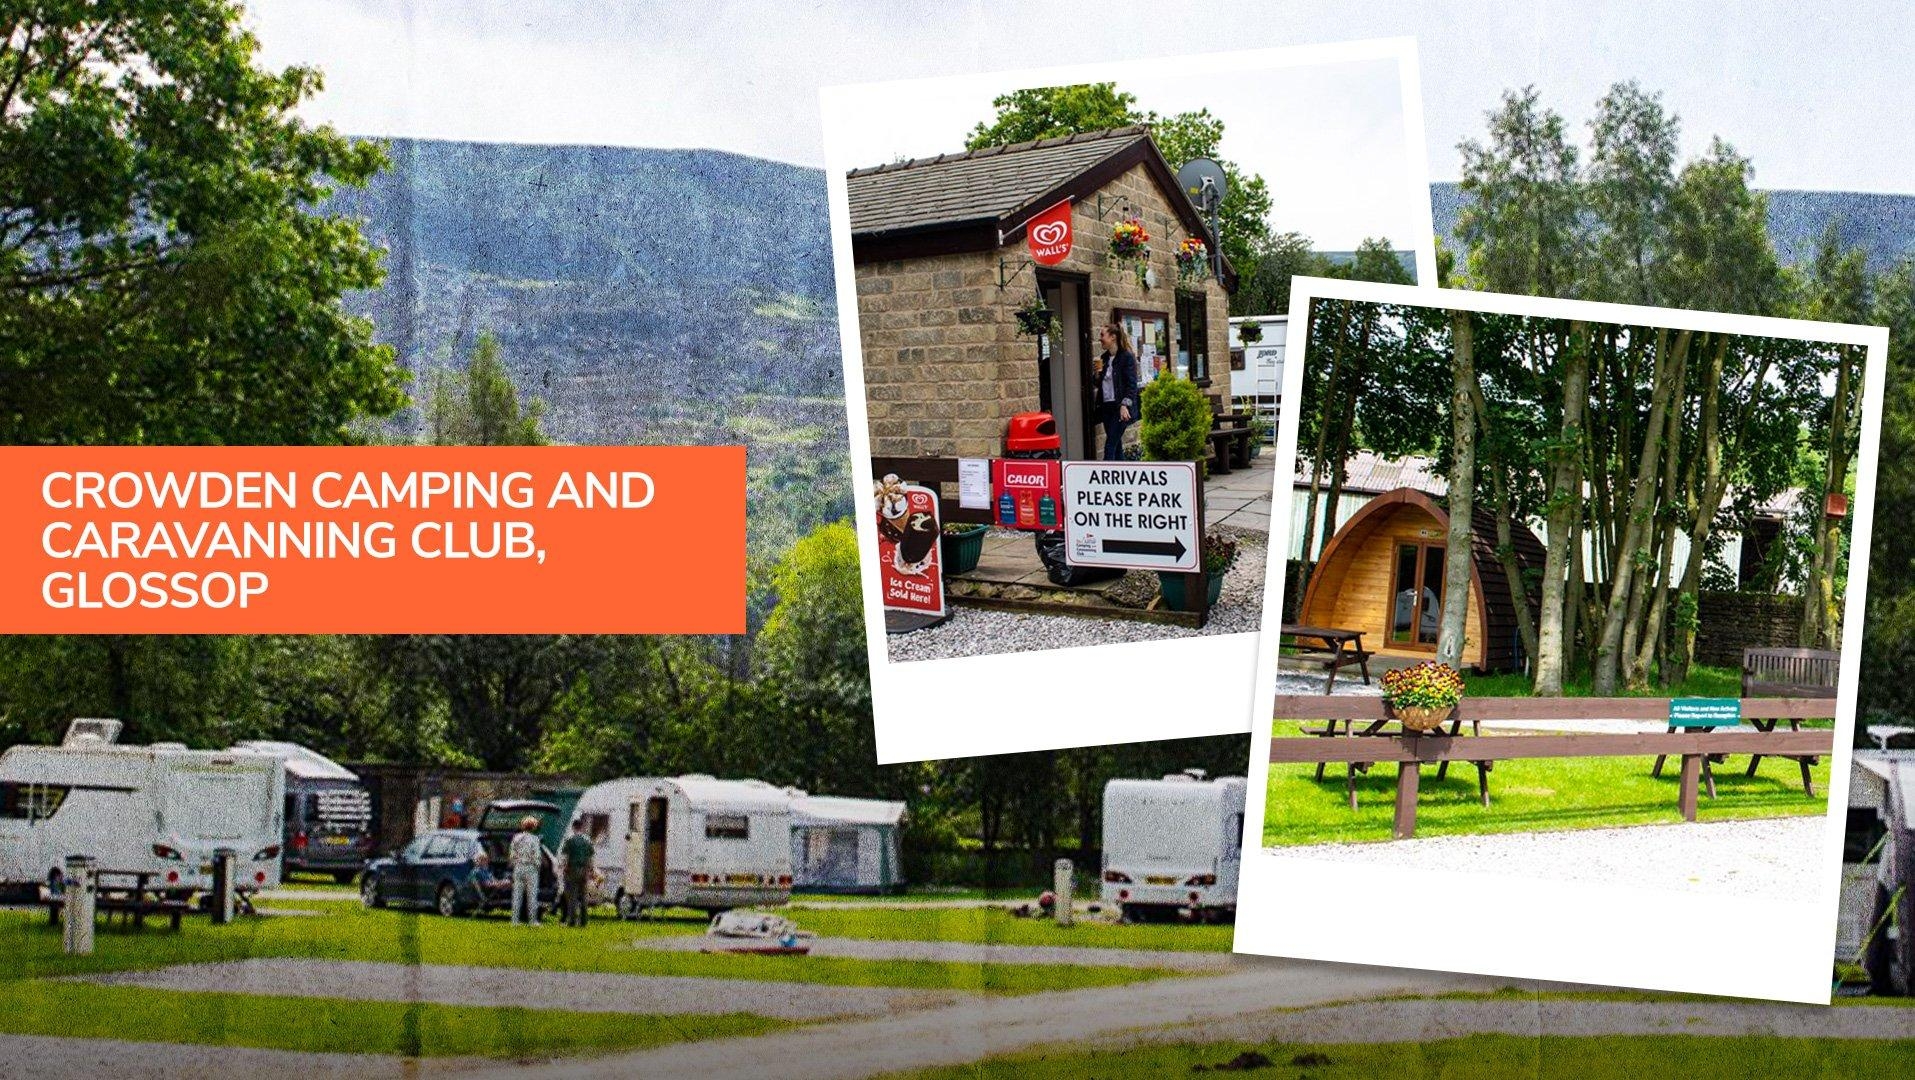 Crowden Camping and Caravan Club in Glossop, 15 miles east of Manchester